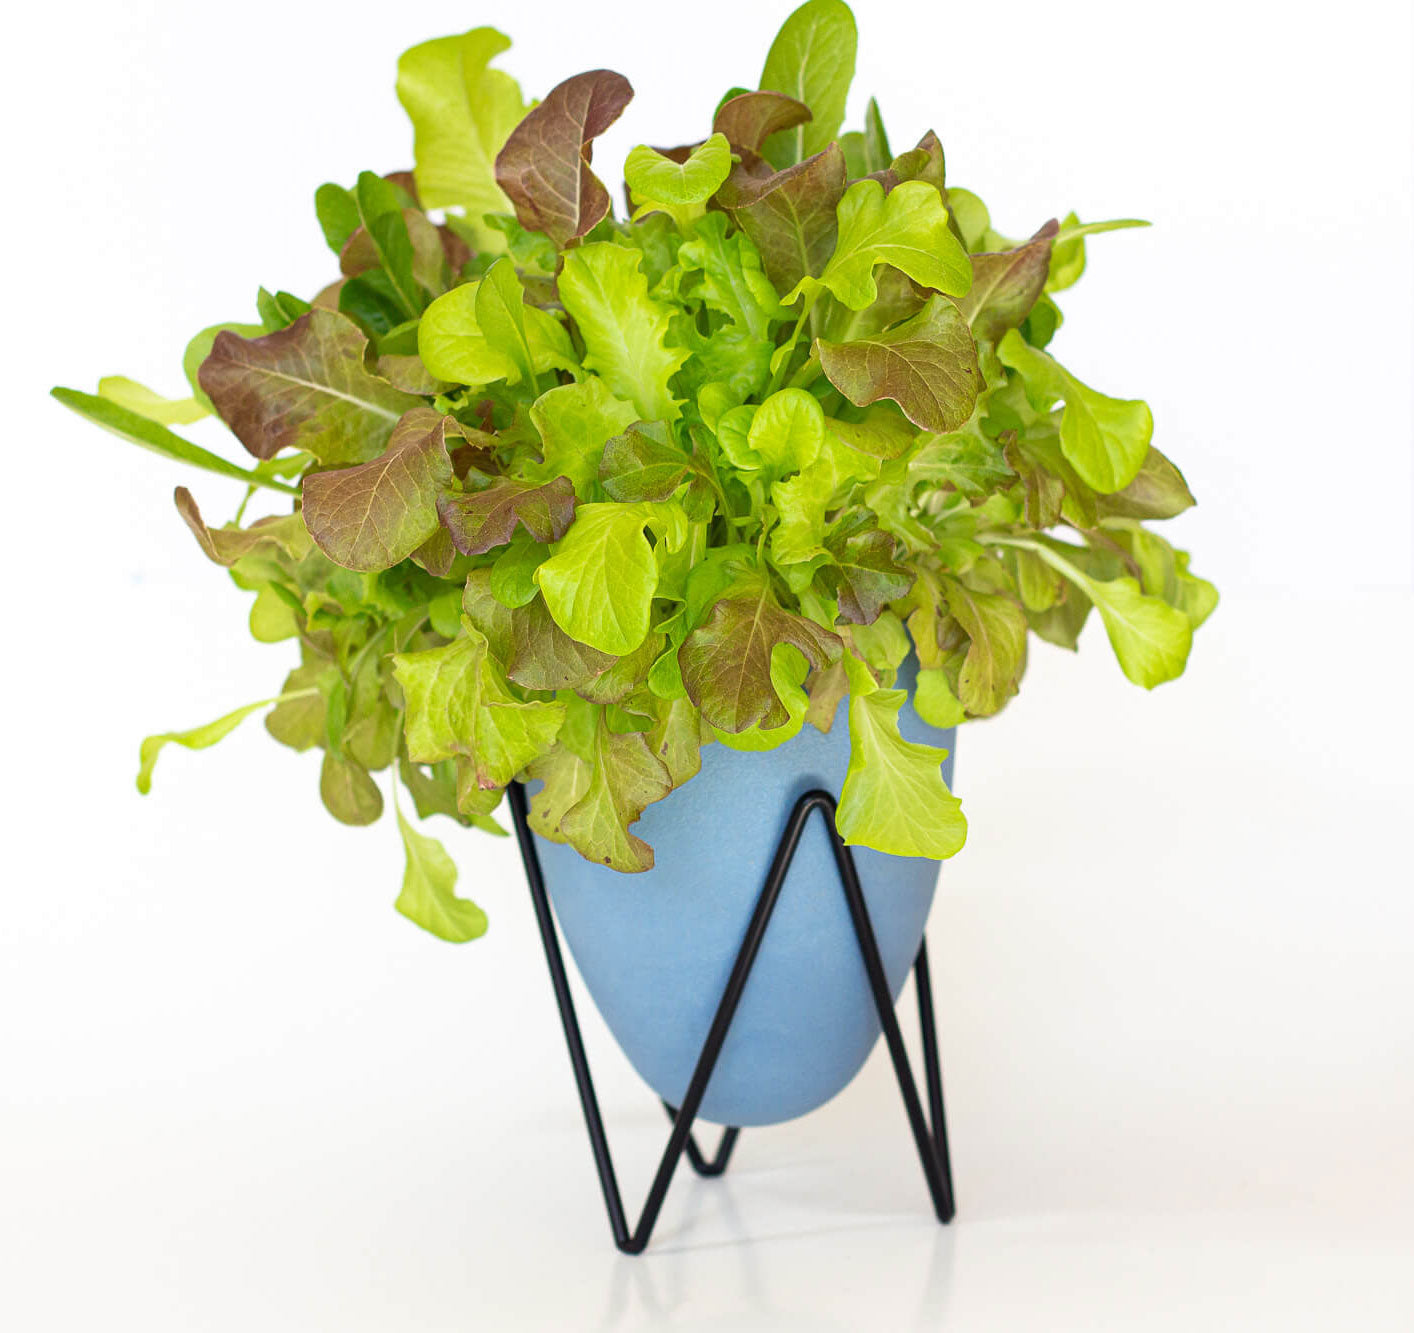 Lettuce Self Watering Planter Indoor Herb Garden Kit Hydroponic EcoPlanter System